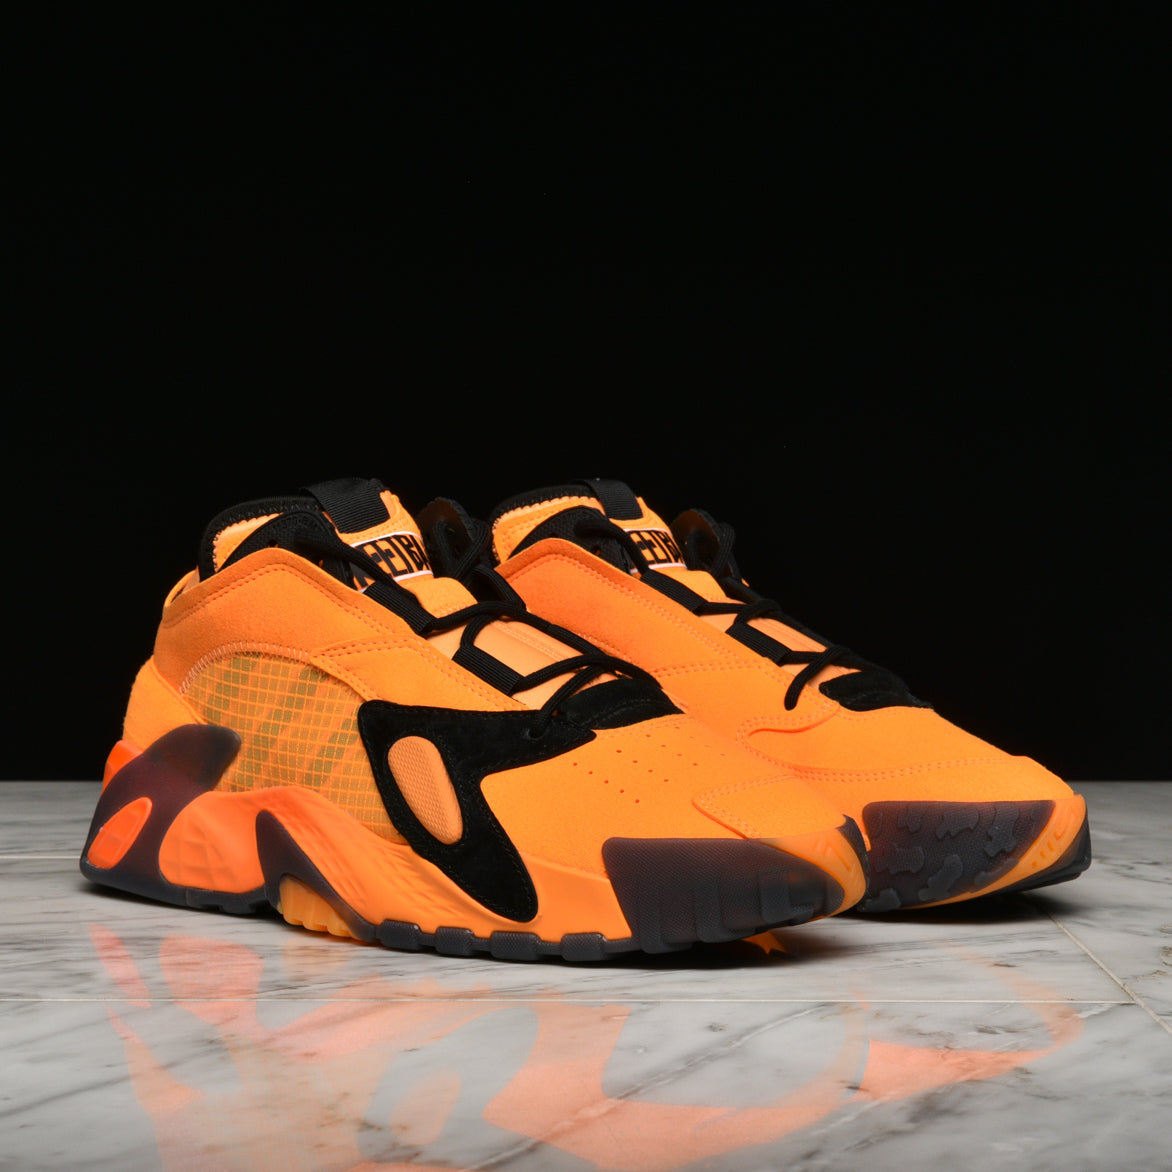 STREETBALL - FLASH ORANGE / SOLAR ORANGE / CORE BLACK